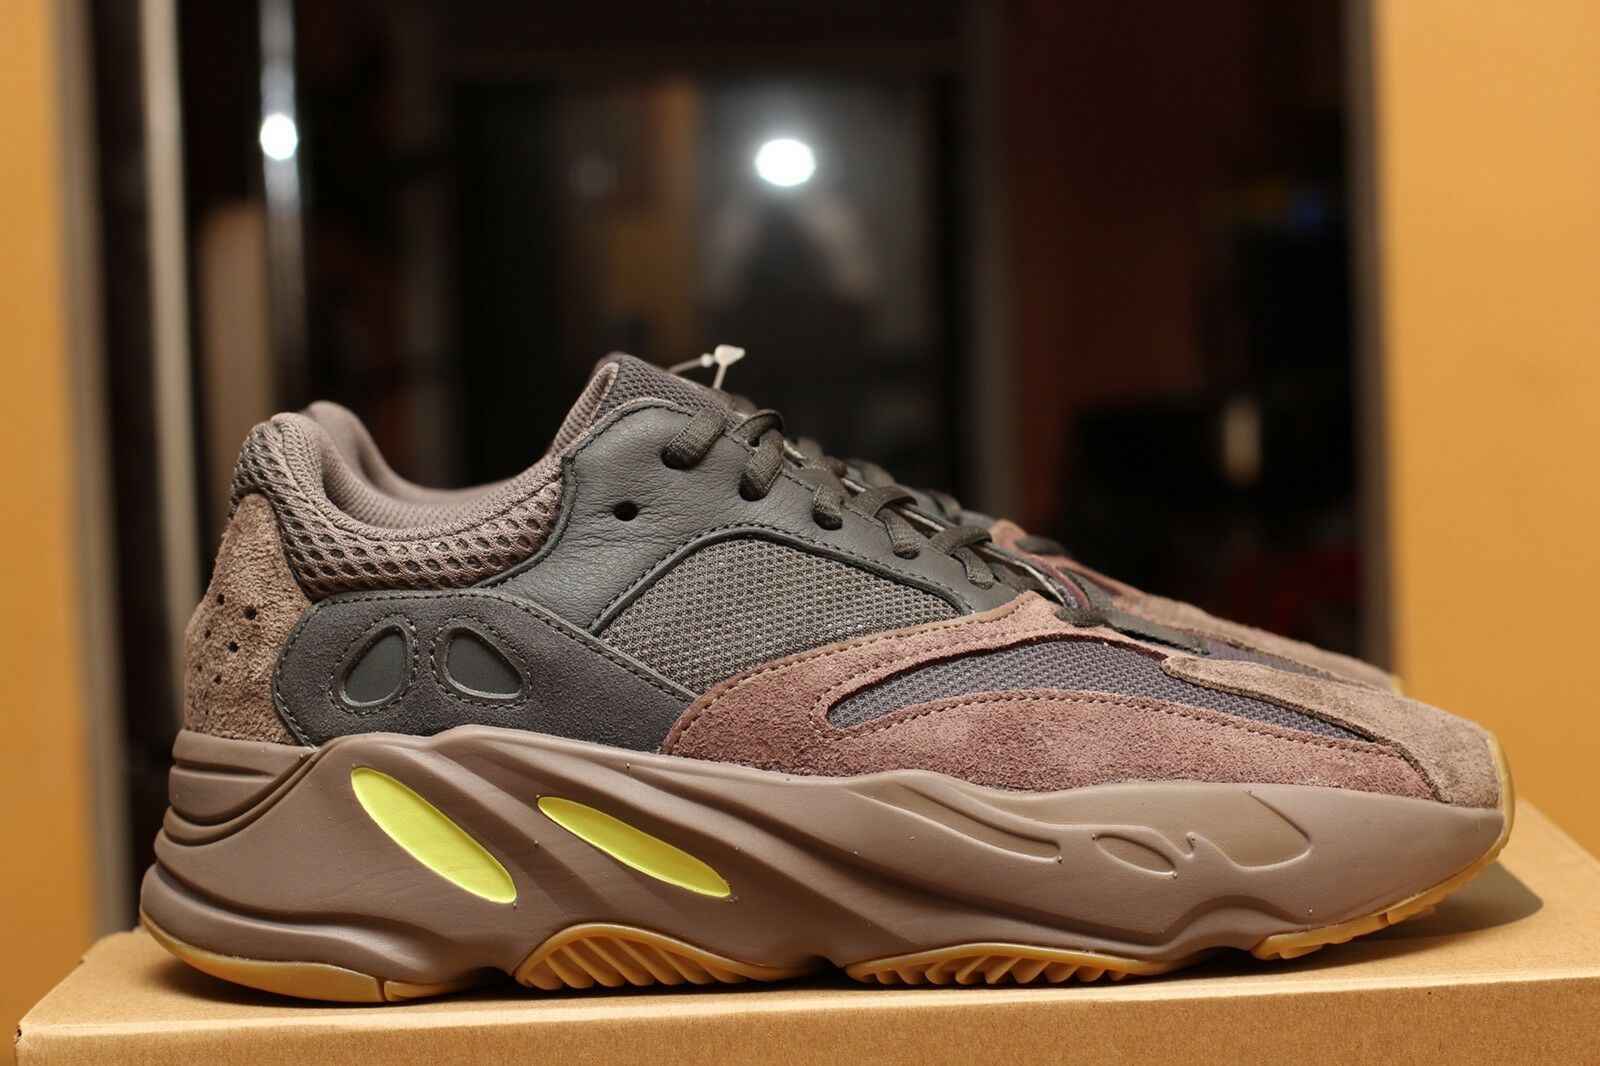 ADIDAS YEEZY BOOST 700 MAUVE  taille 10.5 DS 100% Authentique EE9614